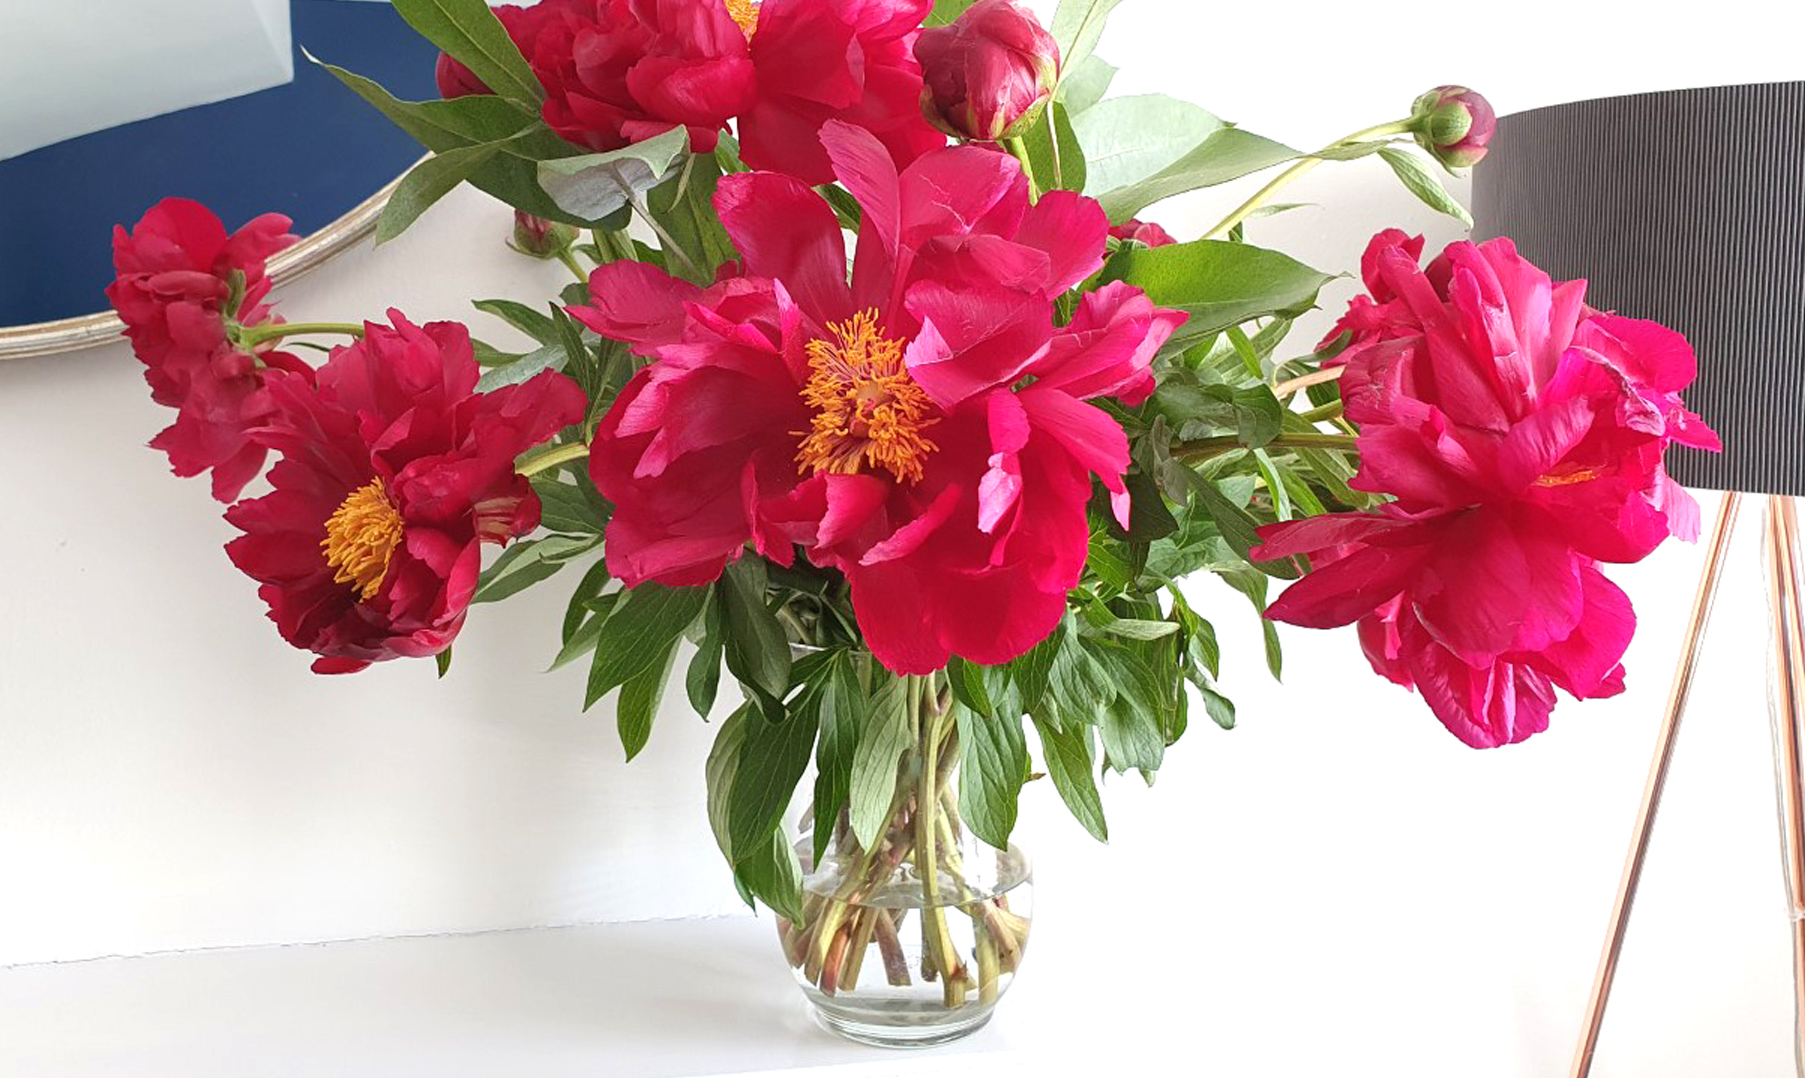 A bright pink vase of peonies